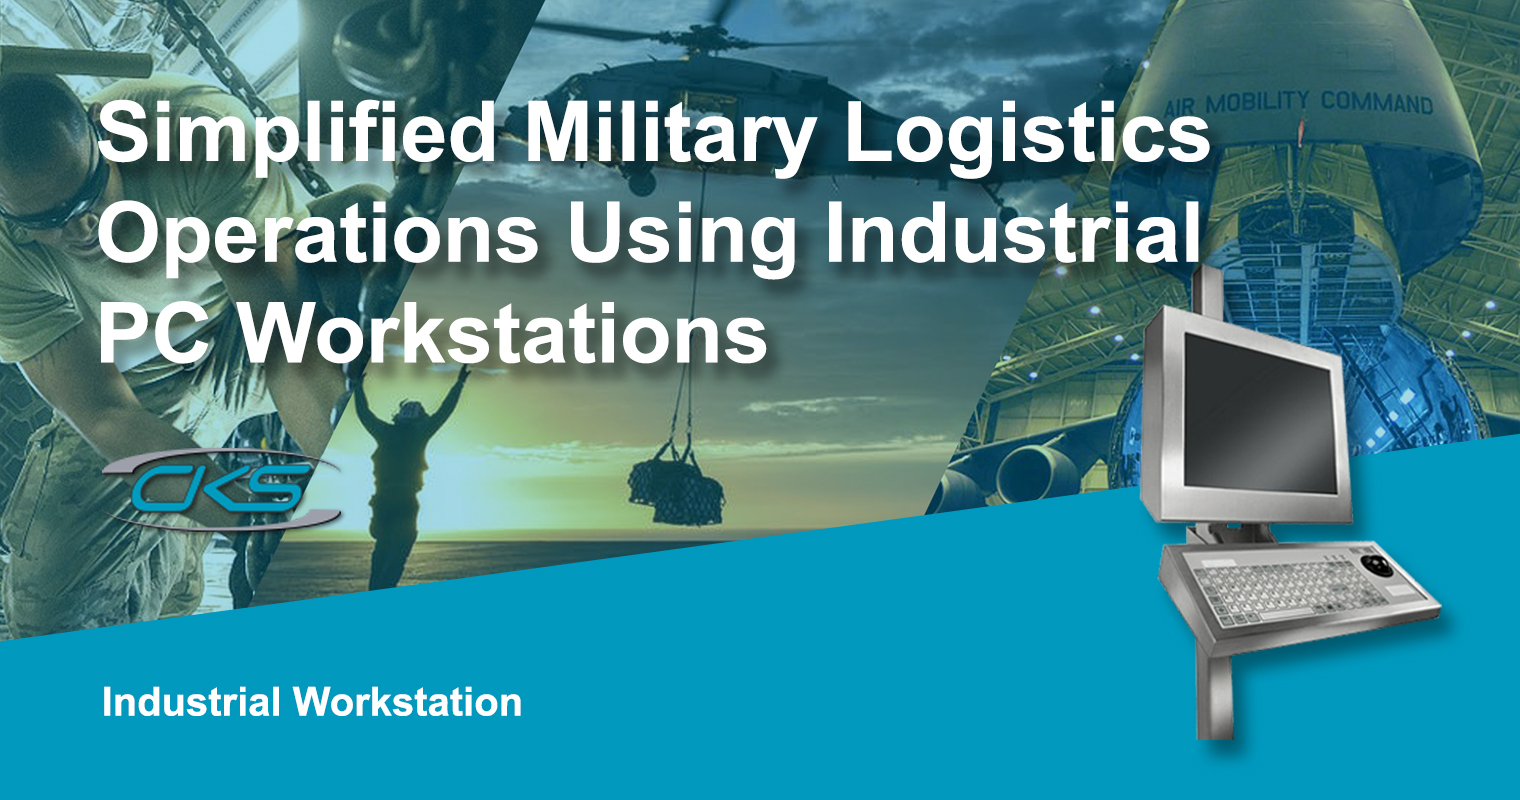 Military Panel PCs Installed on Industrial Workstations for Logistics